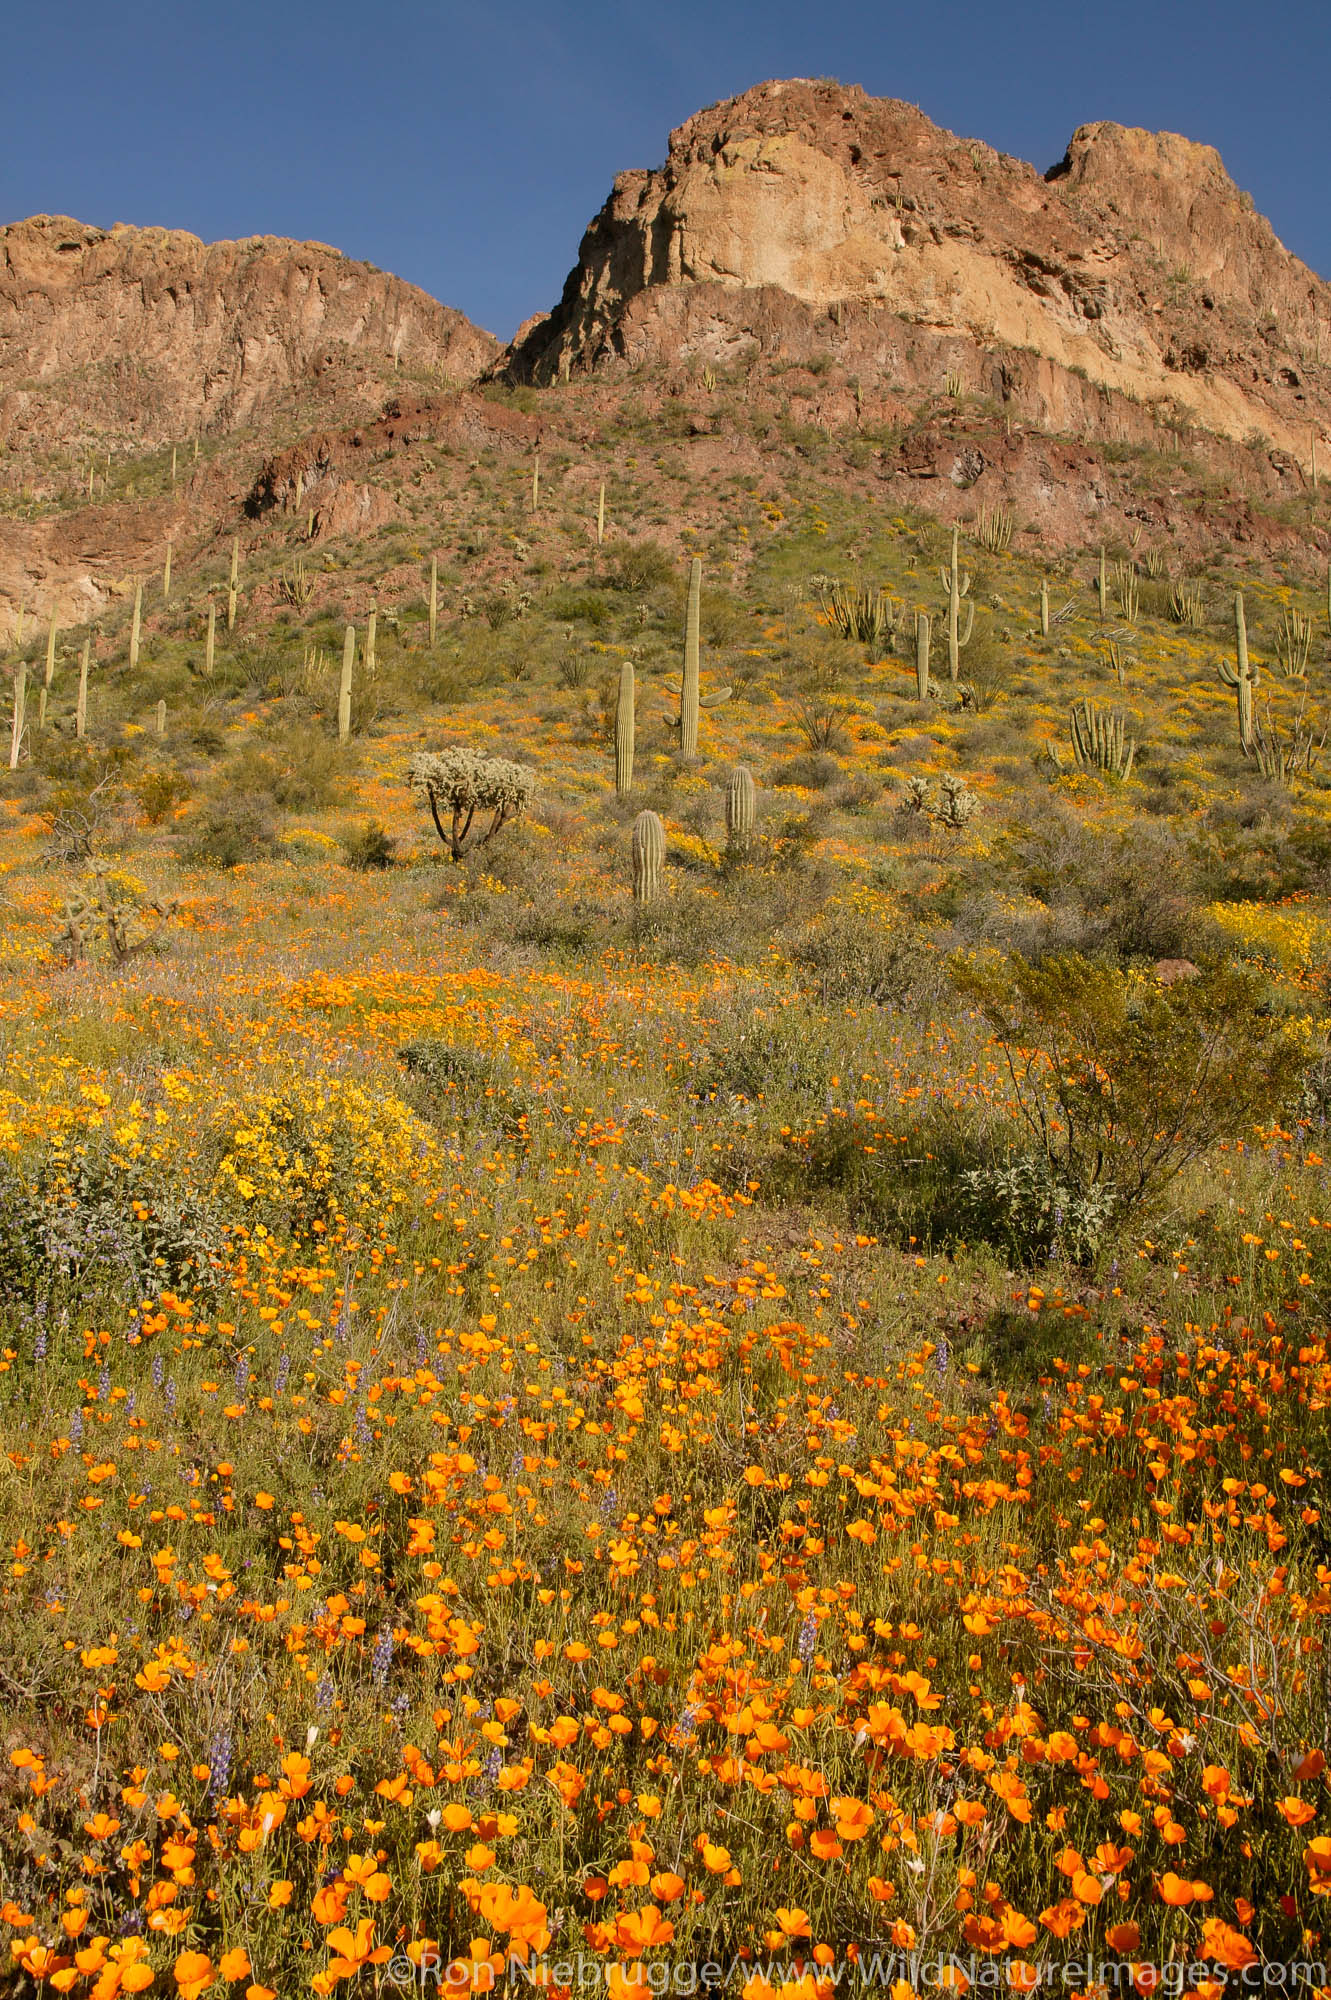 Organ Pipe Cactus (Stenocereus thurberi), Mexican Gold Poppies (Eschscholzia californica subsp. mexicana) and the Deablo Mountains...